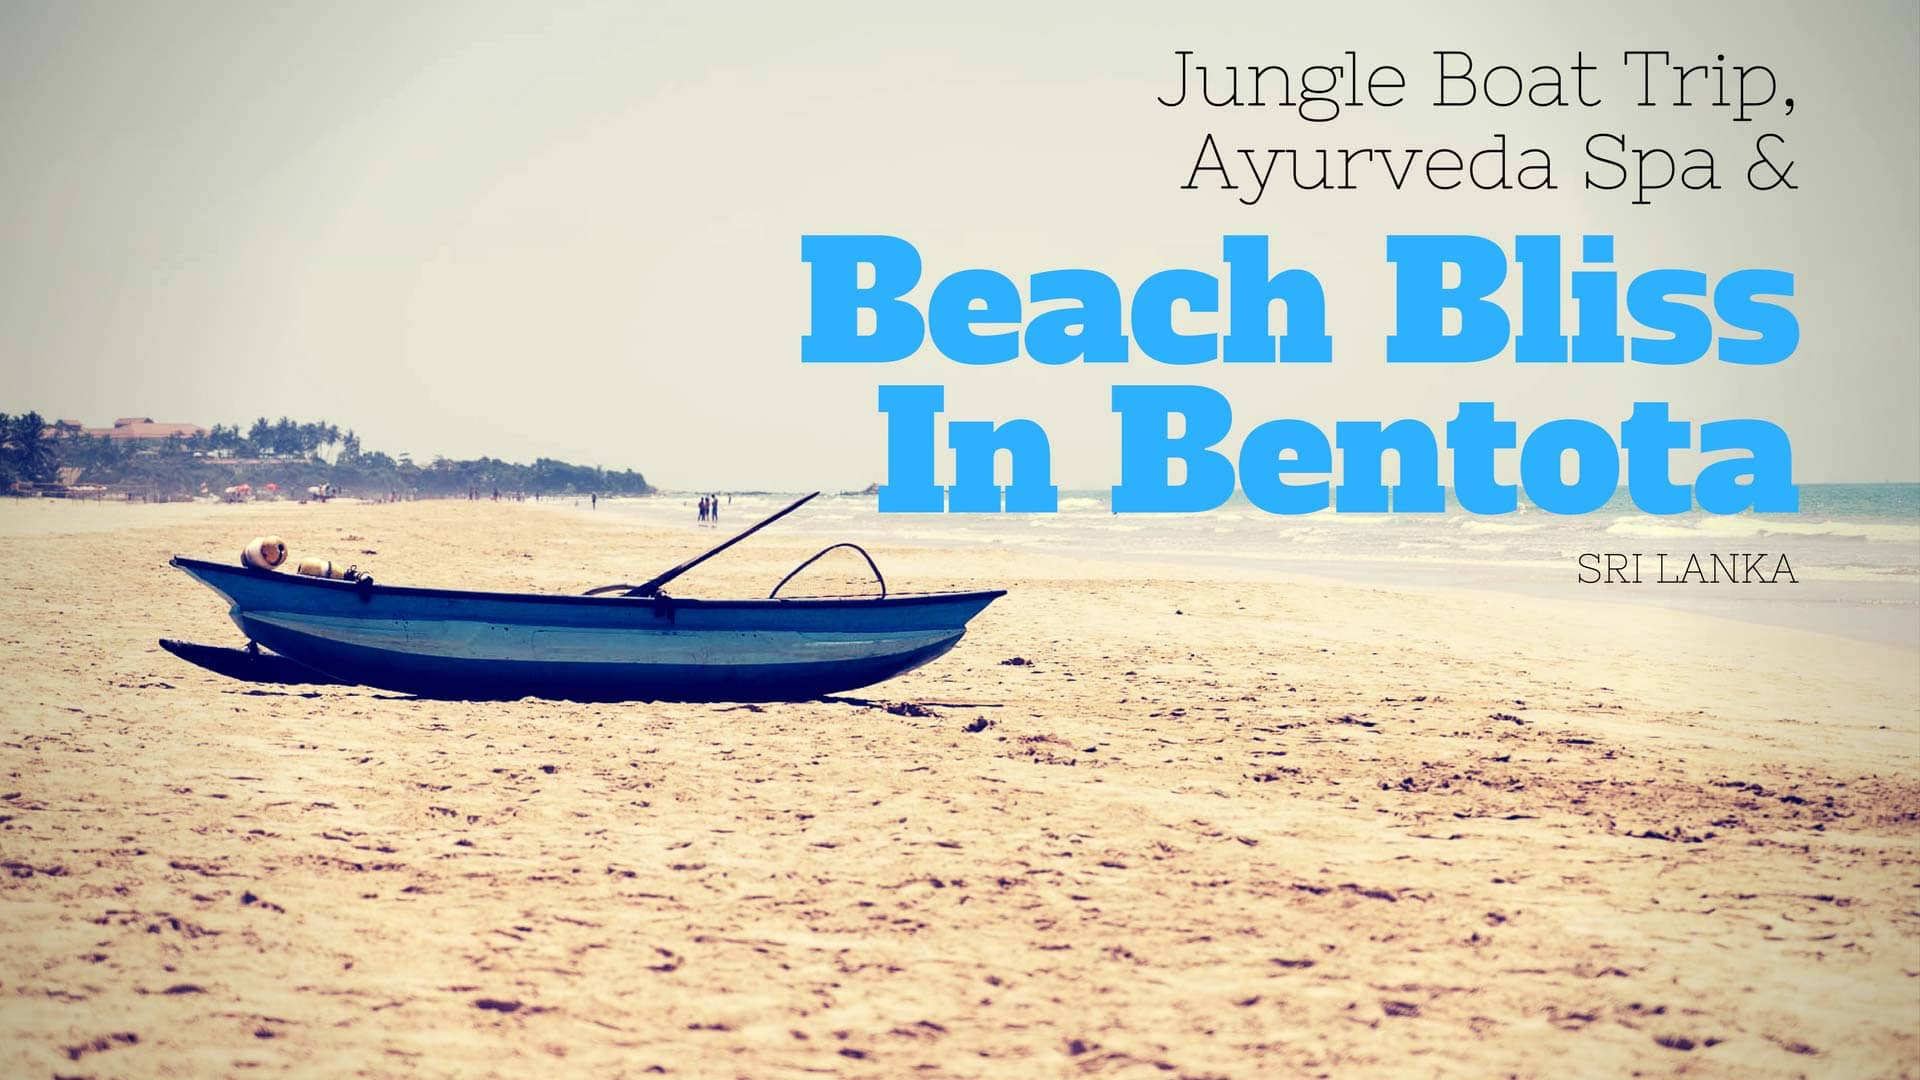 Beach Bliss, Jungle Boat Trip & Ayurveda Spa – Bentota, Sri Lanka